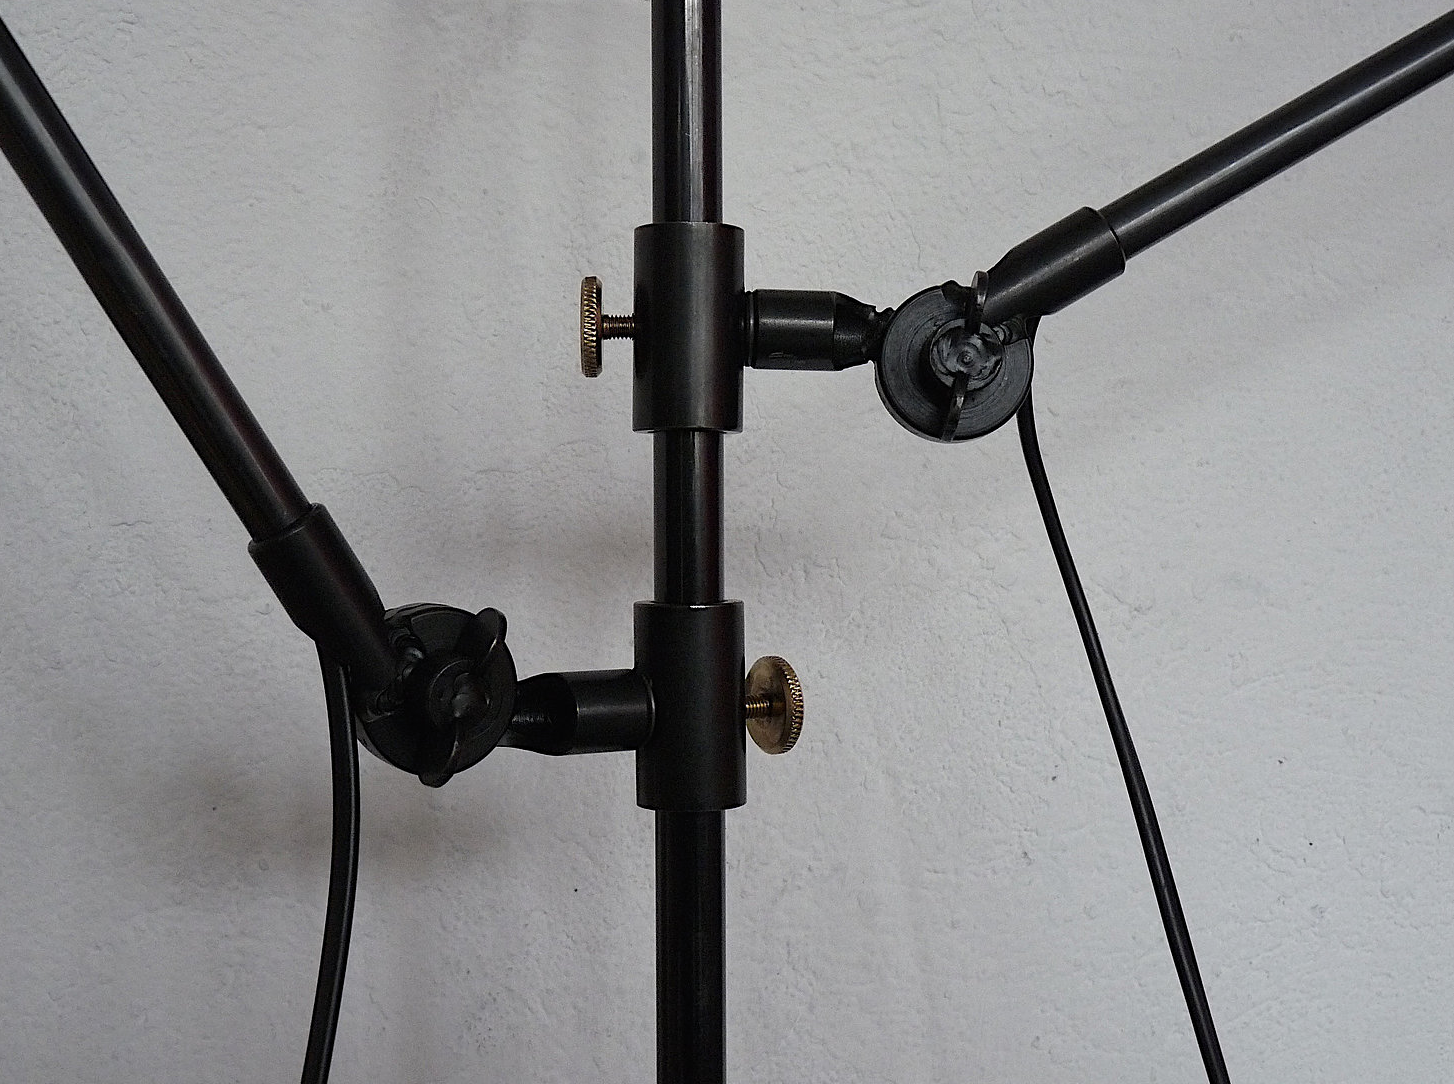 A detail of the Anvers Two Arm Lamp's adjustable blackened steel and brass joints.